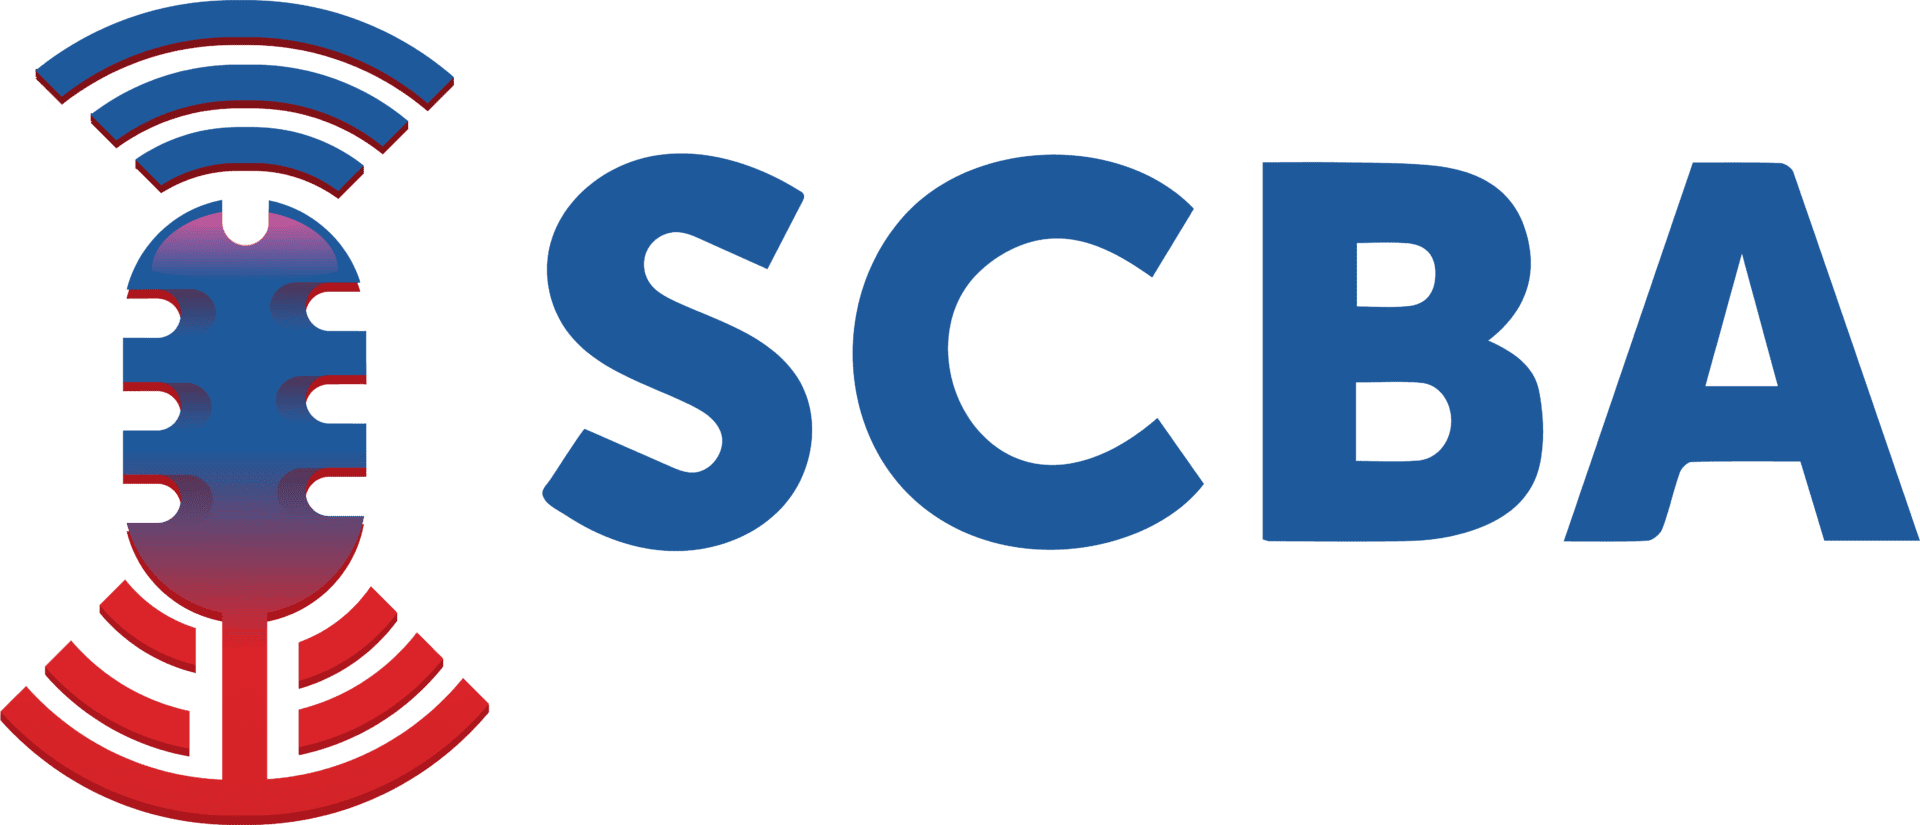 The Southern California Broadcasters Association